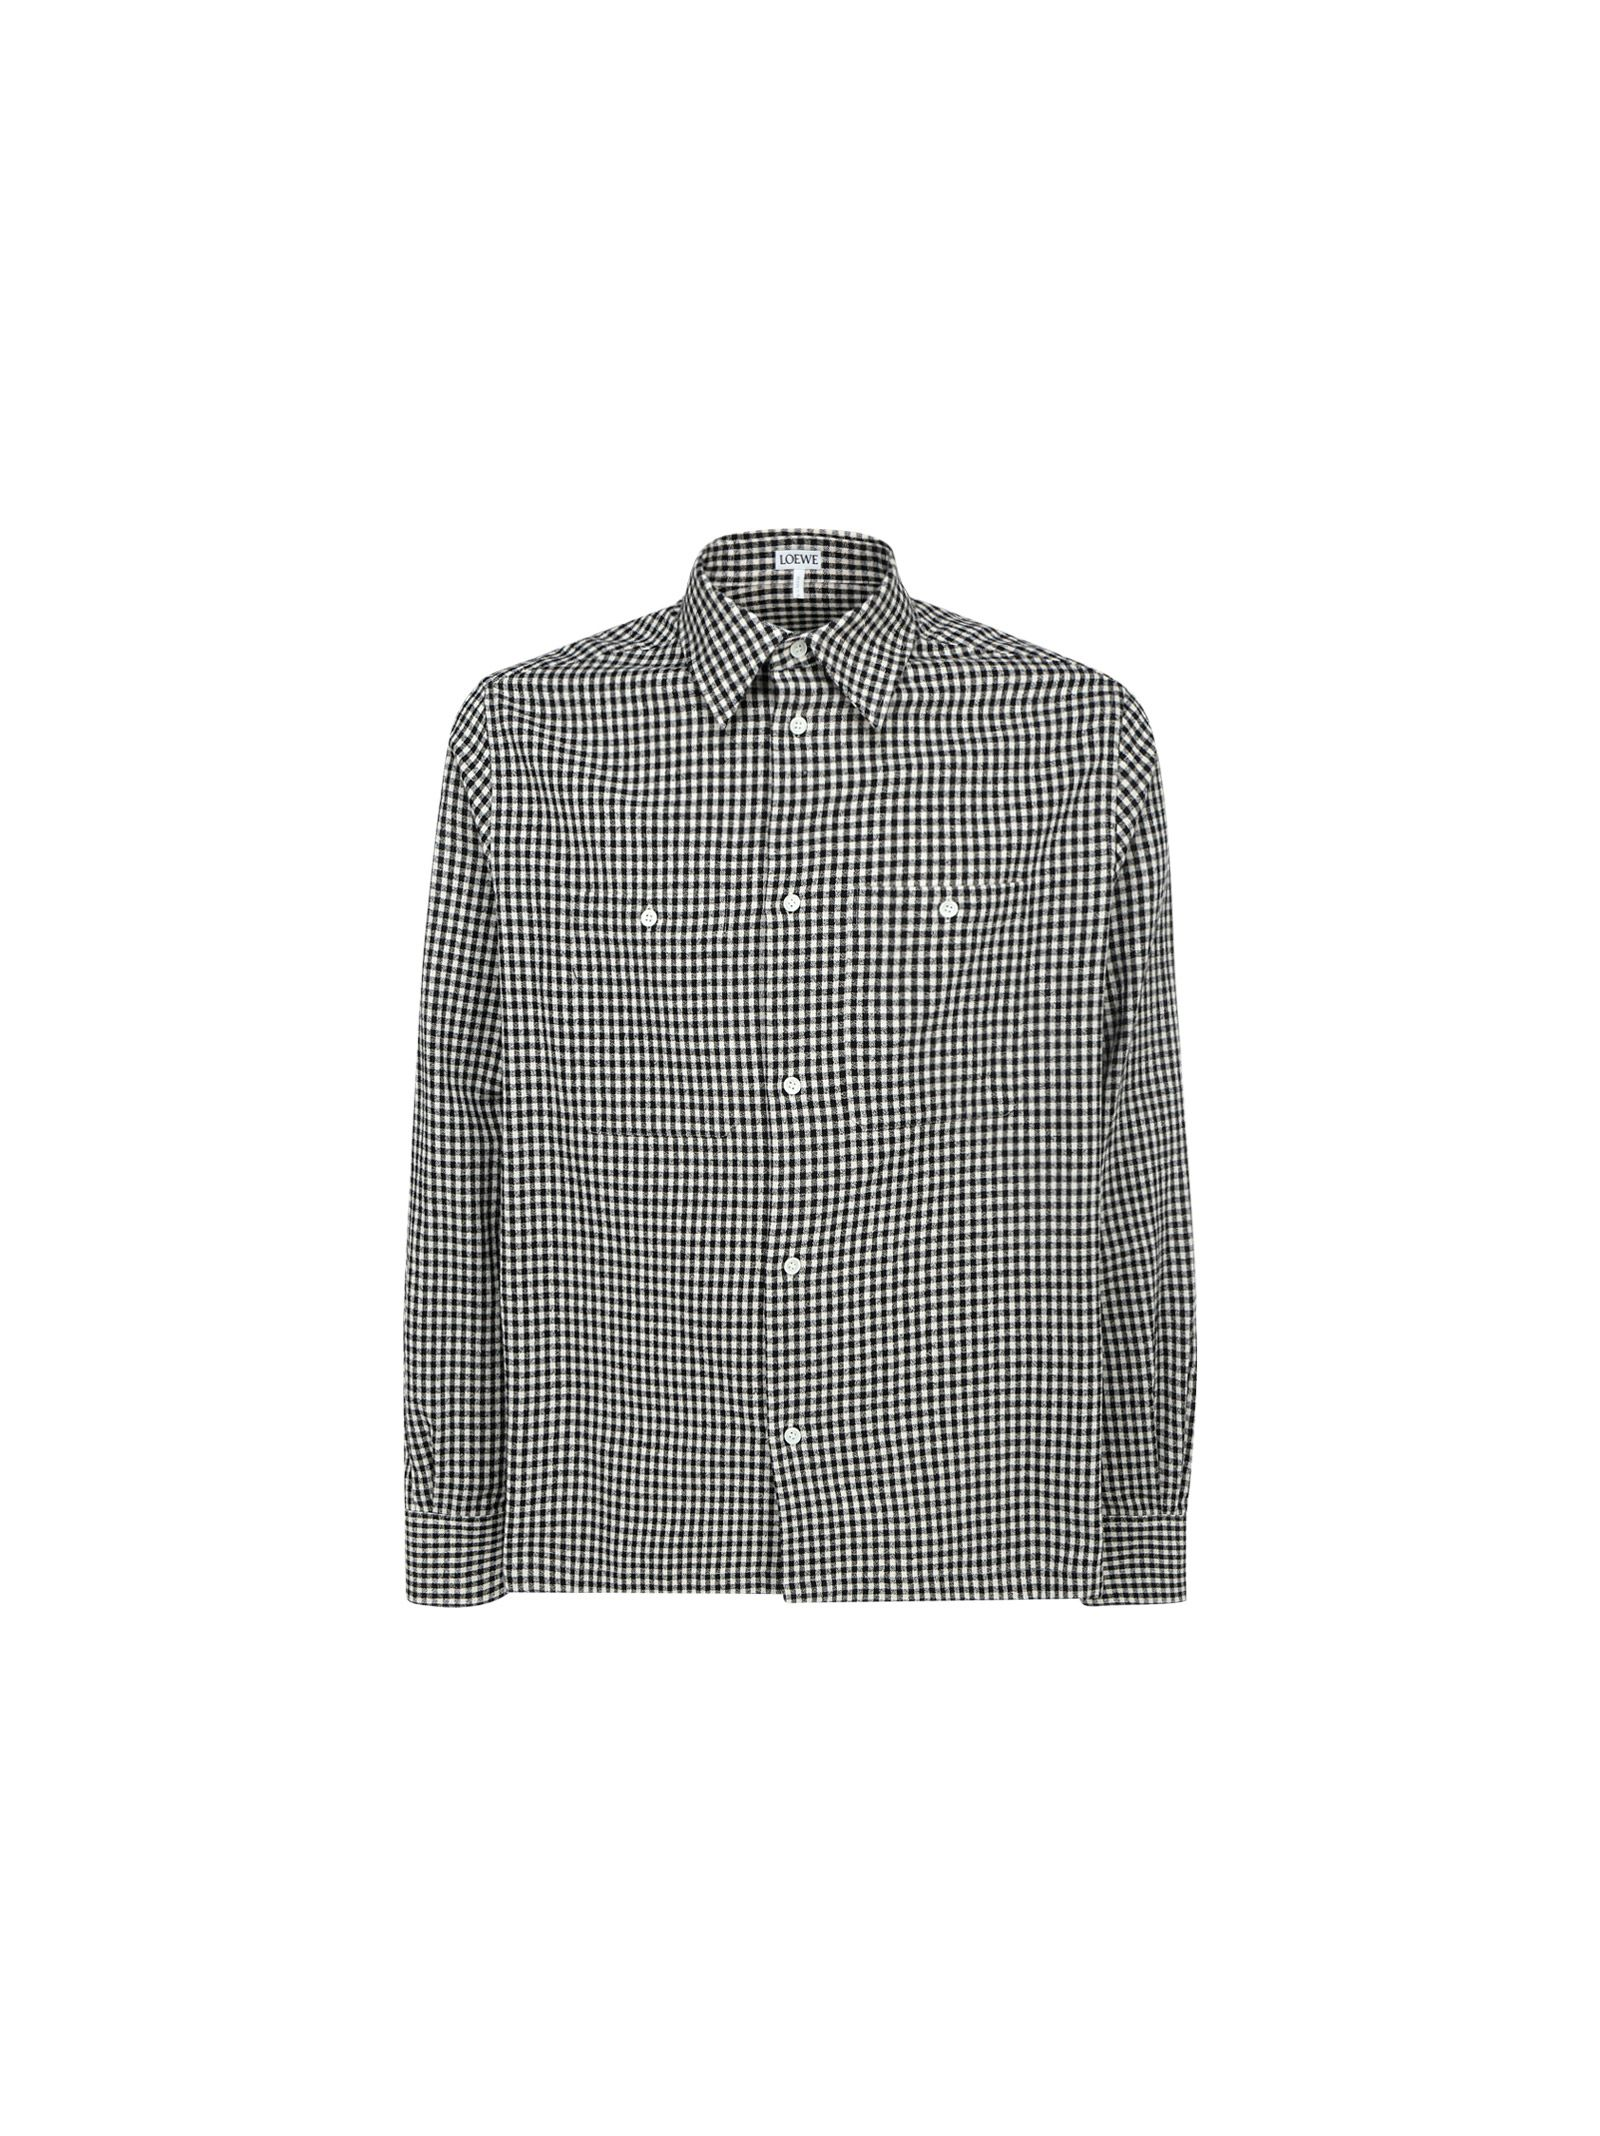 Loewe Cottons LOEWE MEN'S BLACK OTHER MATERIALS SHIRT